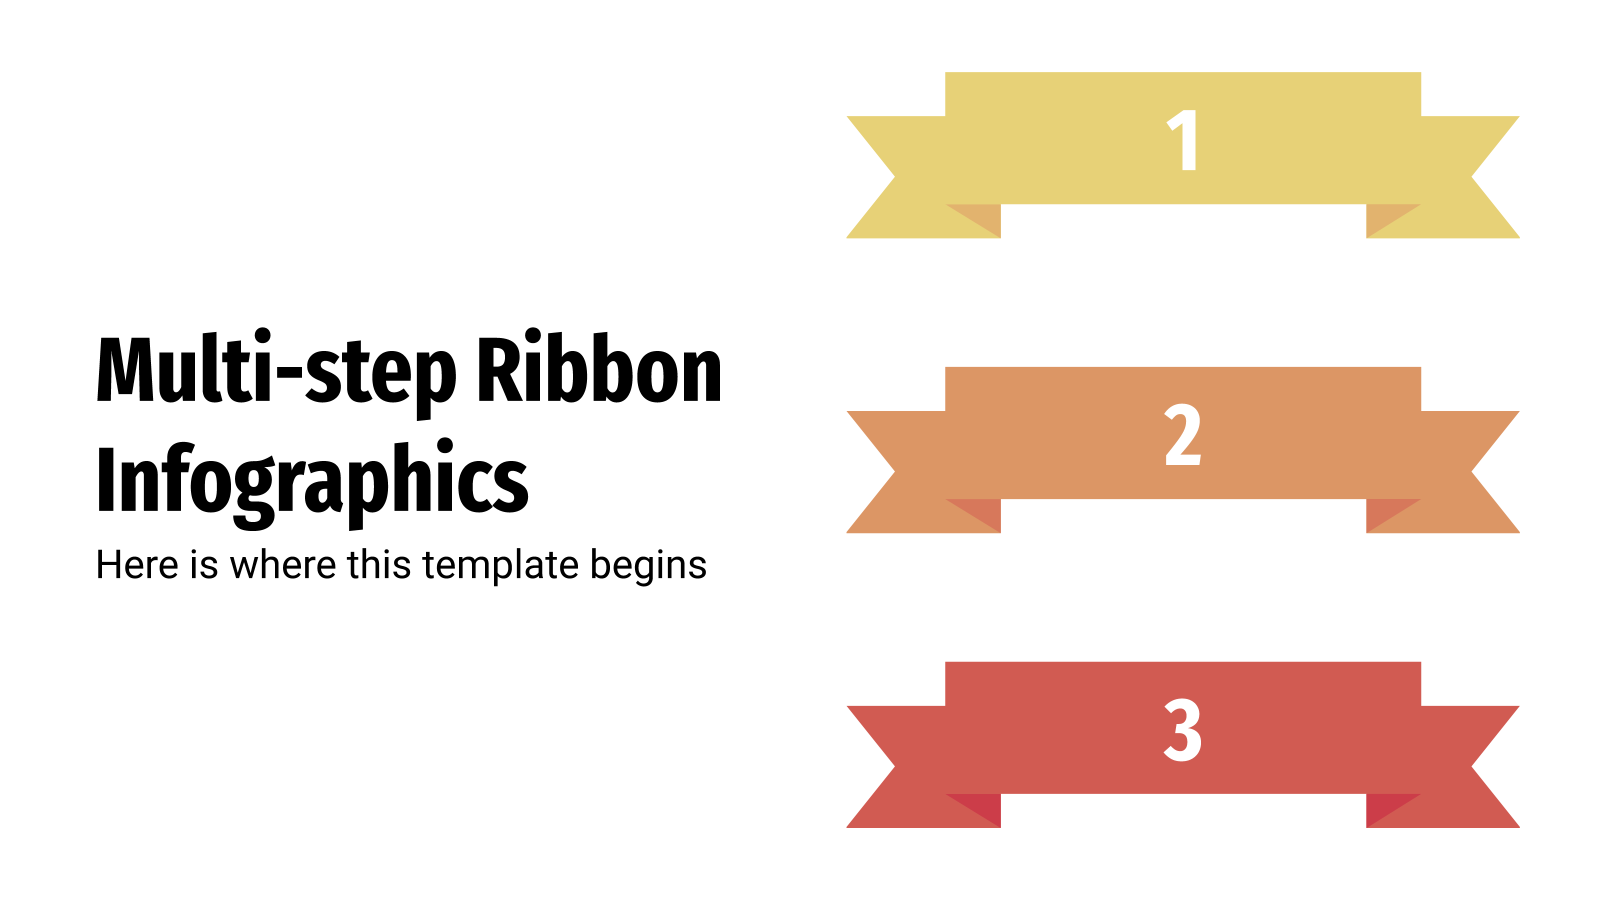 Multi-step Ribbon Infographics presentation template